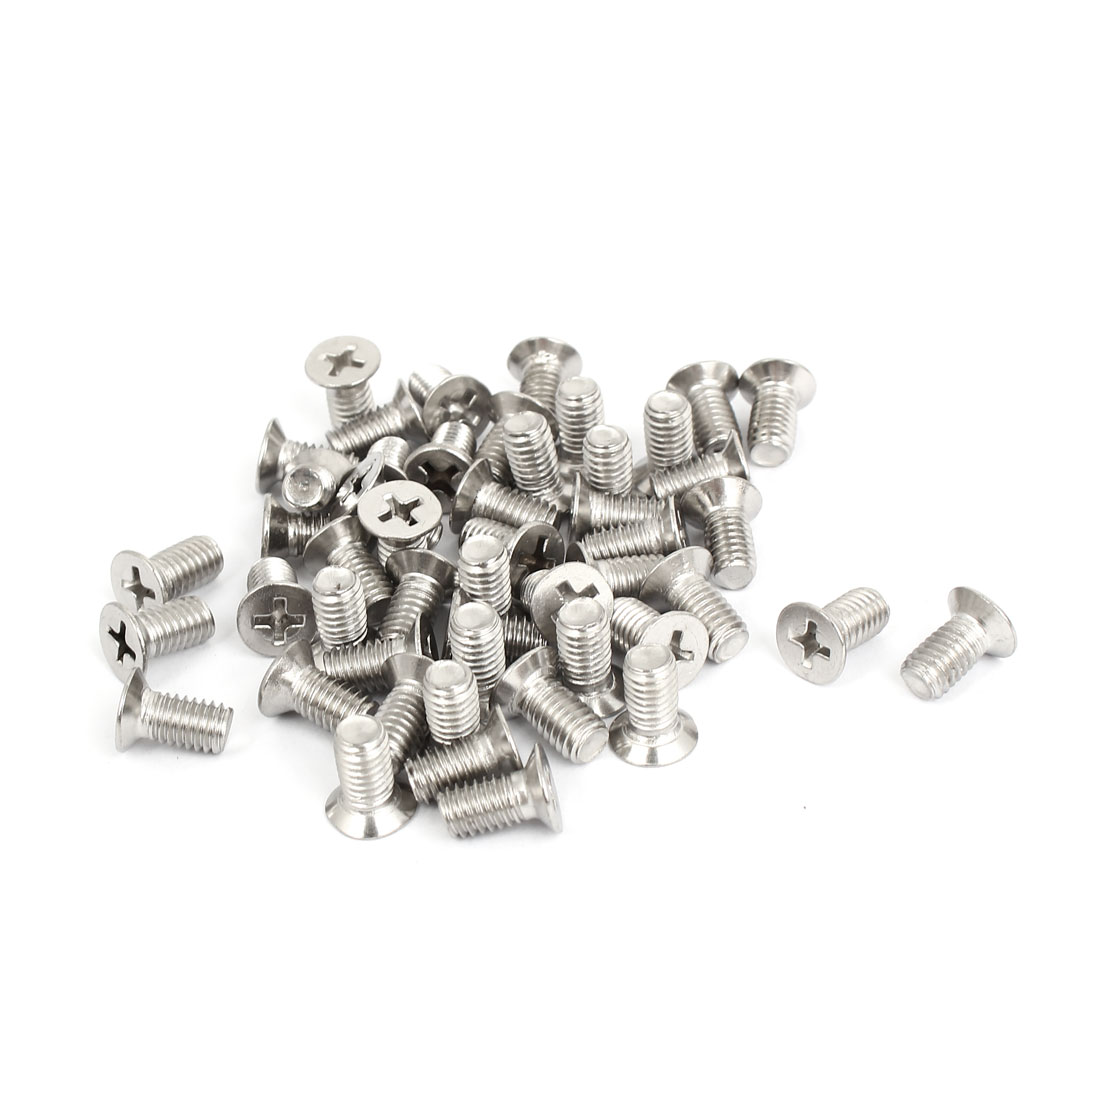 M6x12mm Stainless Steel Countersunk Flat Head Cross Phillips Screw Bolts 50pcs